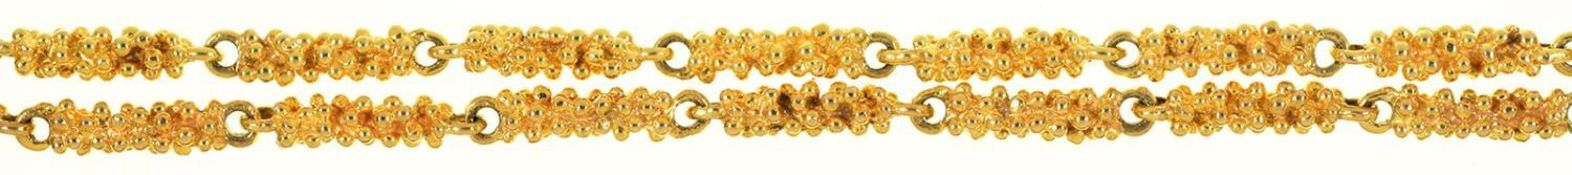 A GOLD NECKLACE OF TEXTURED BATONS, 77CM L, INCOMPLETELY MARKED, MAKER'S MARK J D (?), LONDON